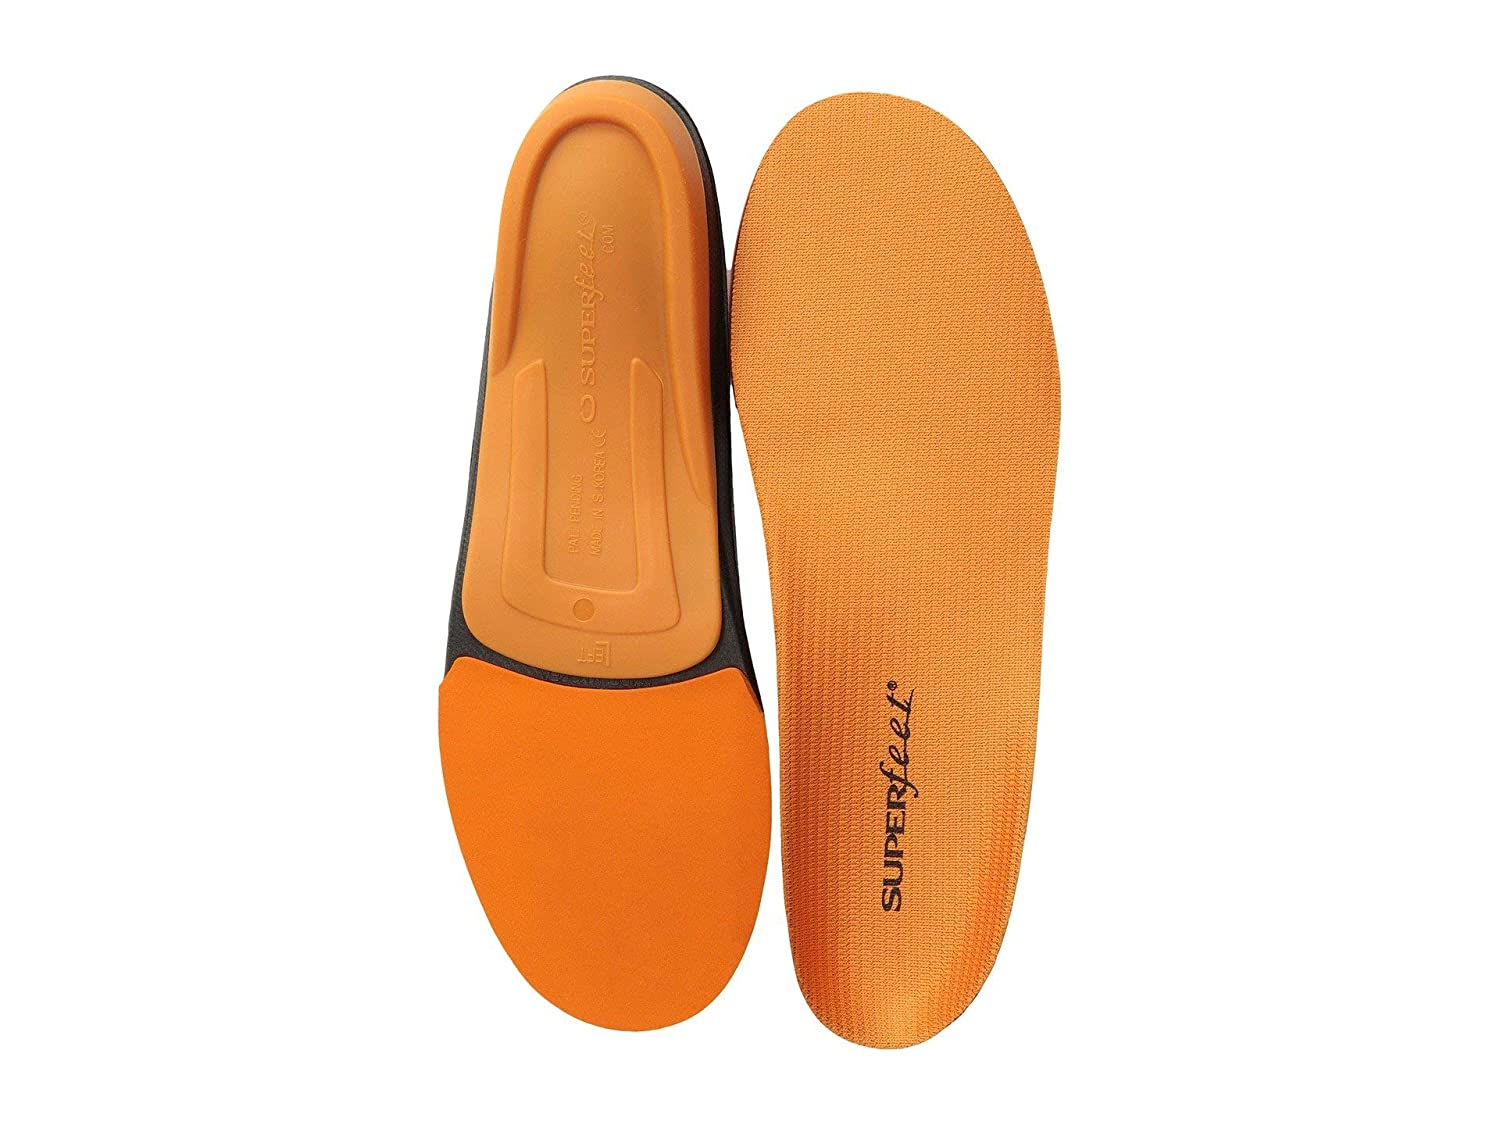 Superfeet Orange Premium Insole Orange Premium-M